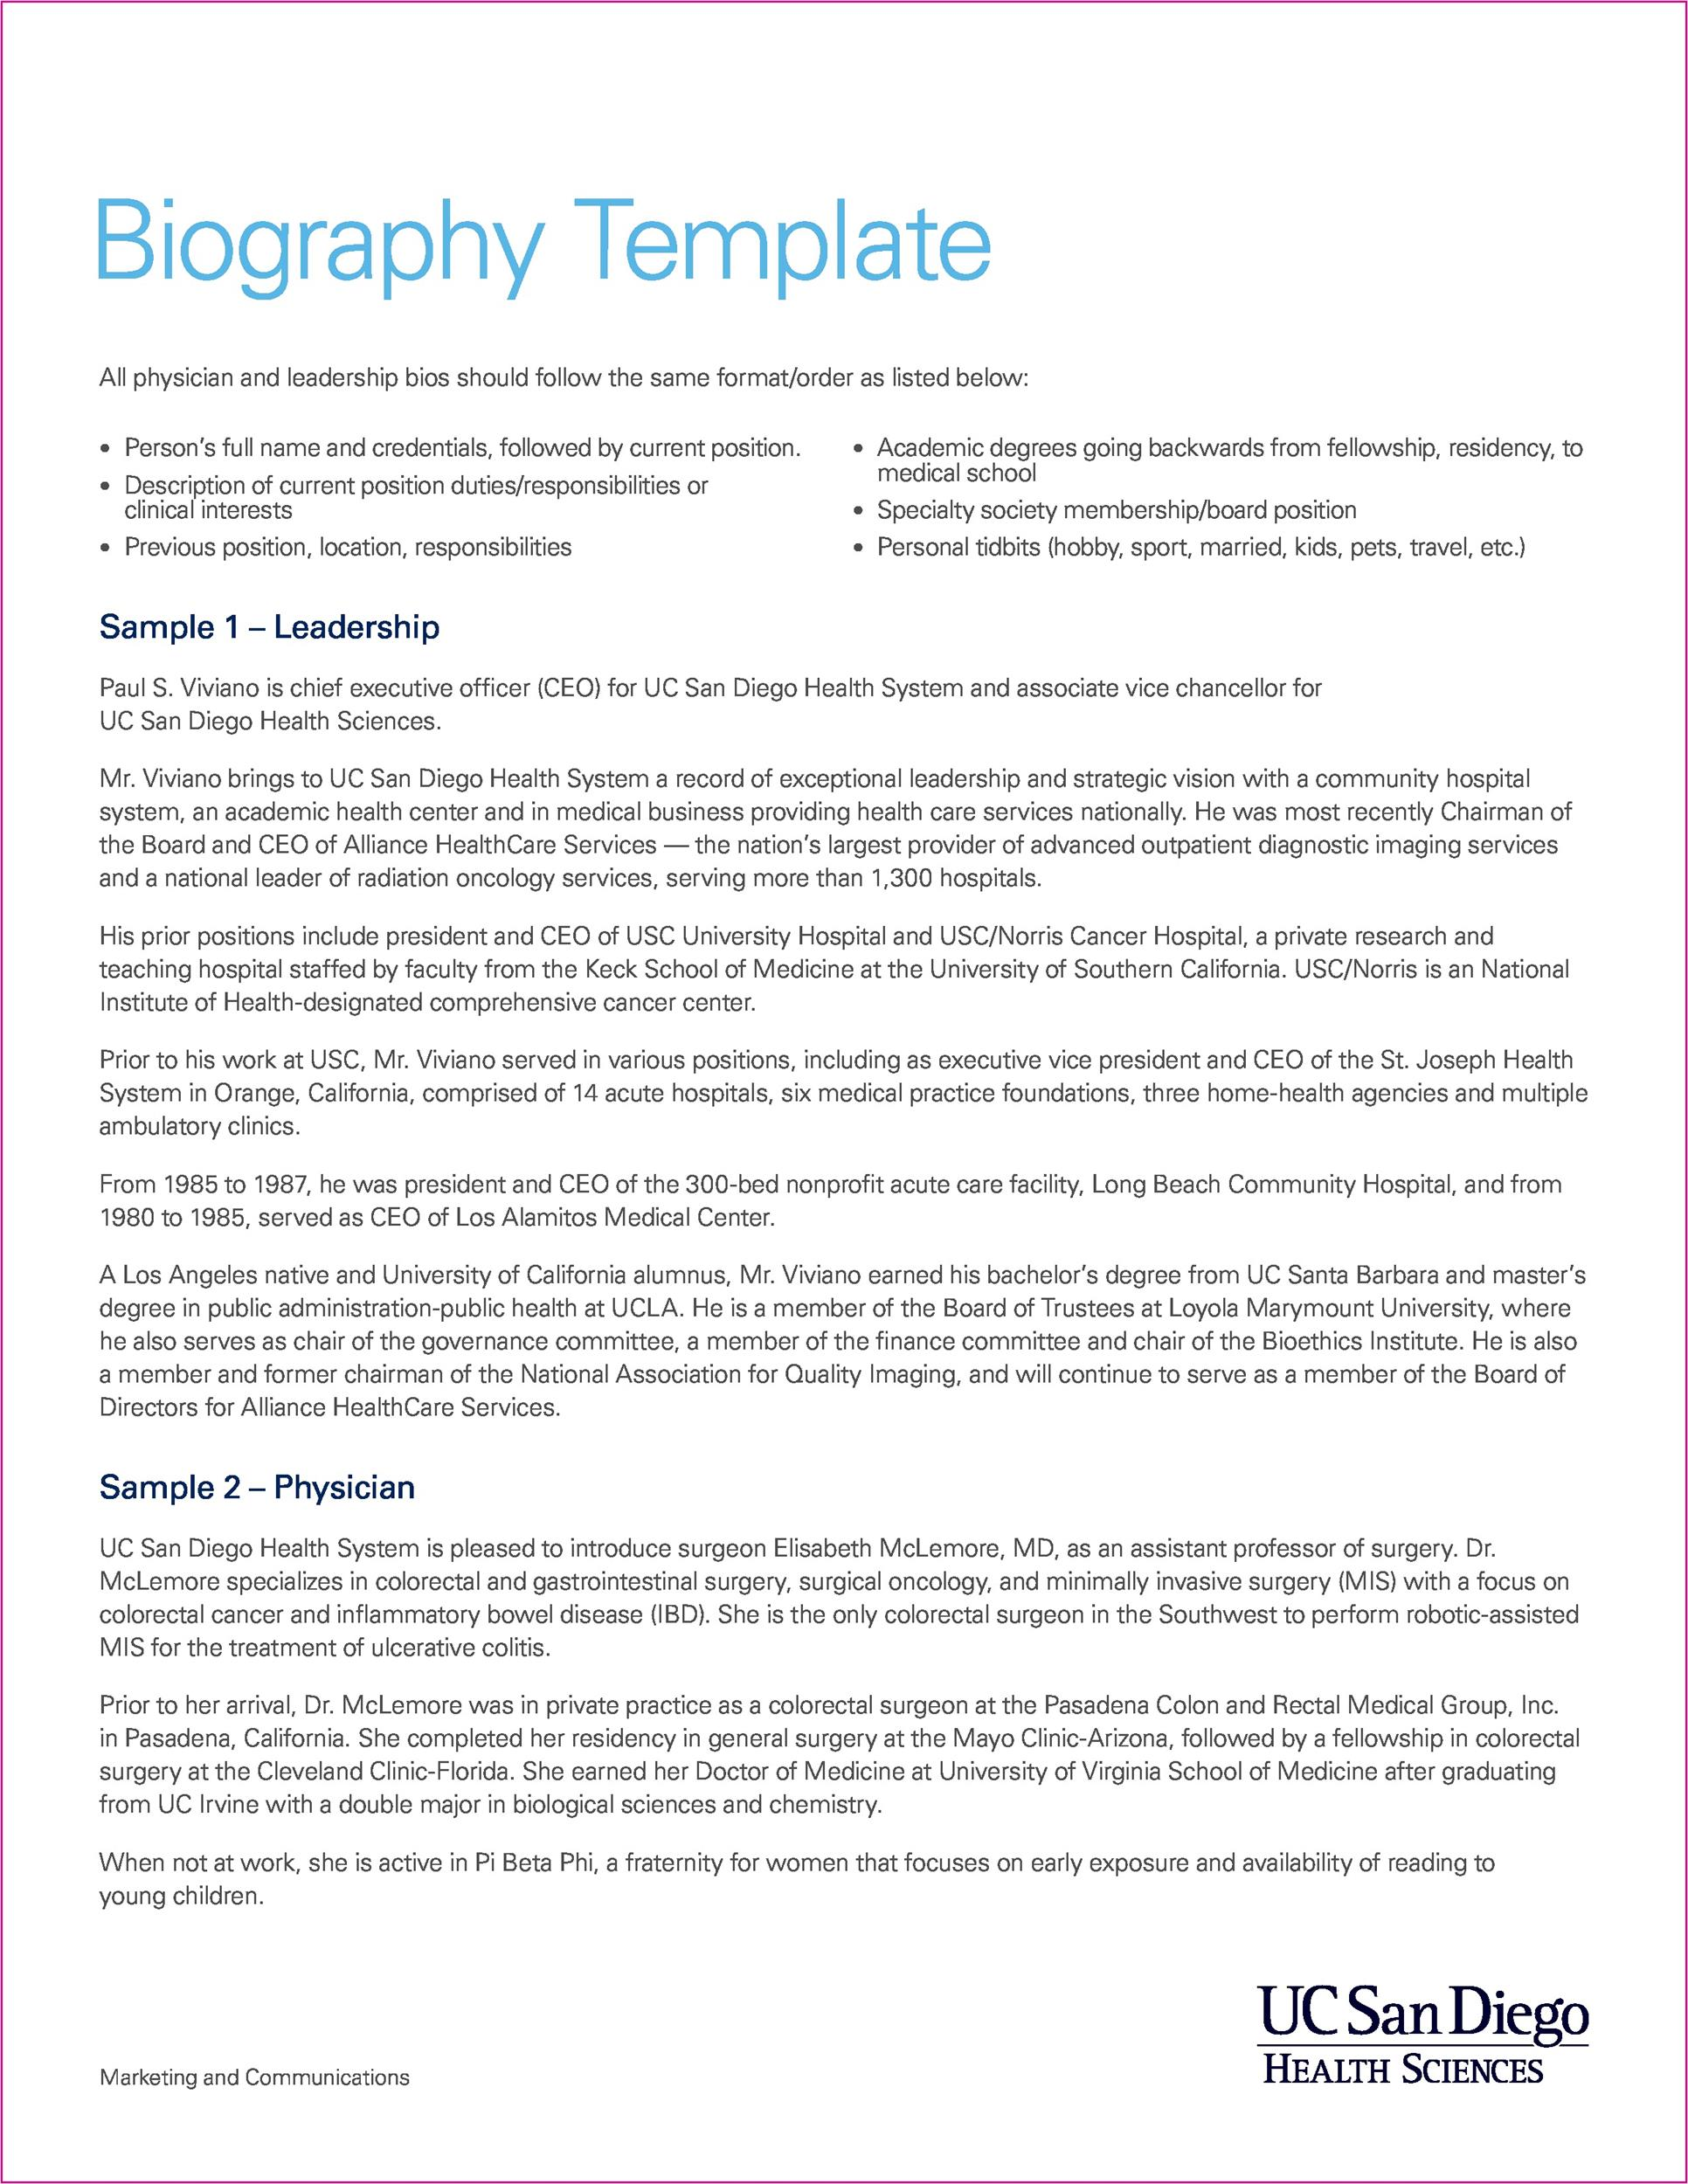 45 biography templates examples personal professional free biography template 01 thecheapjerseys